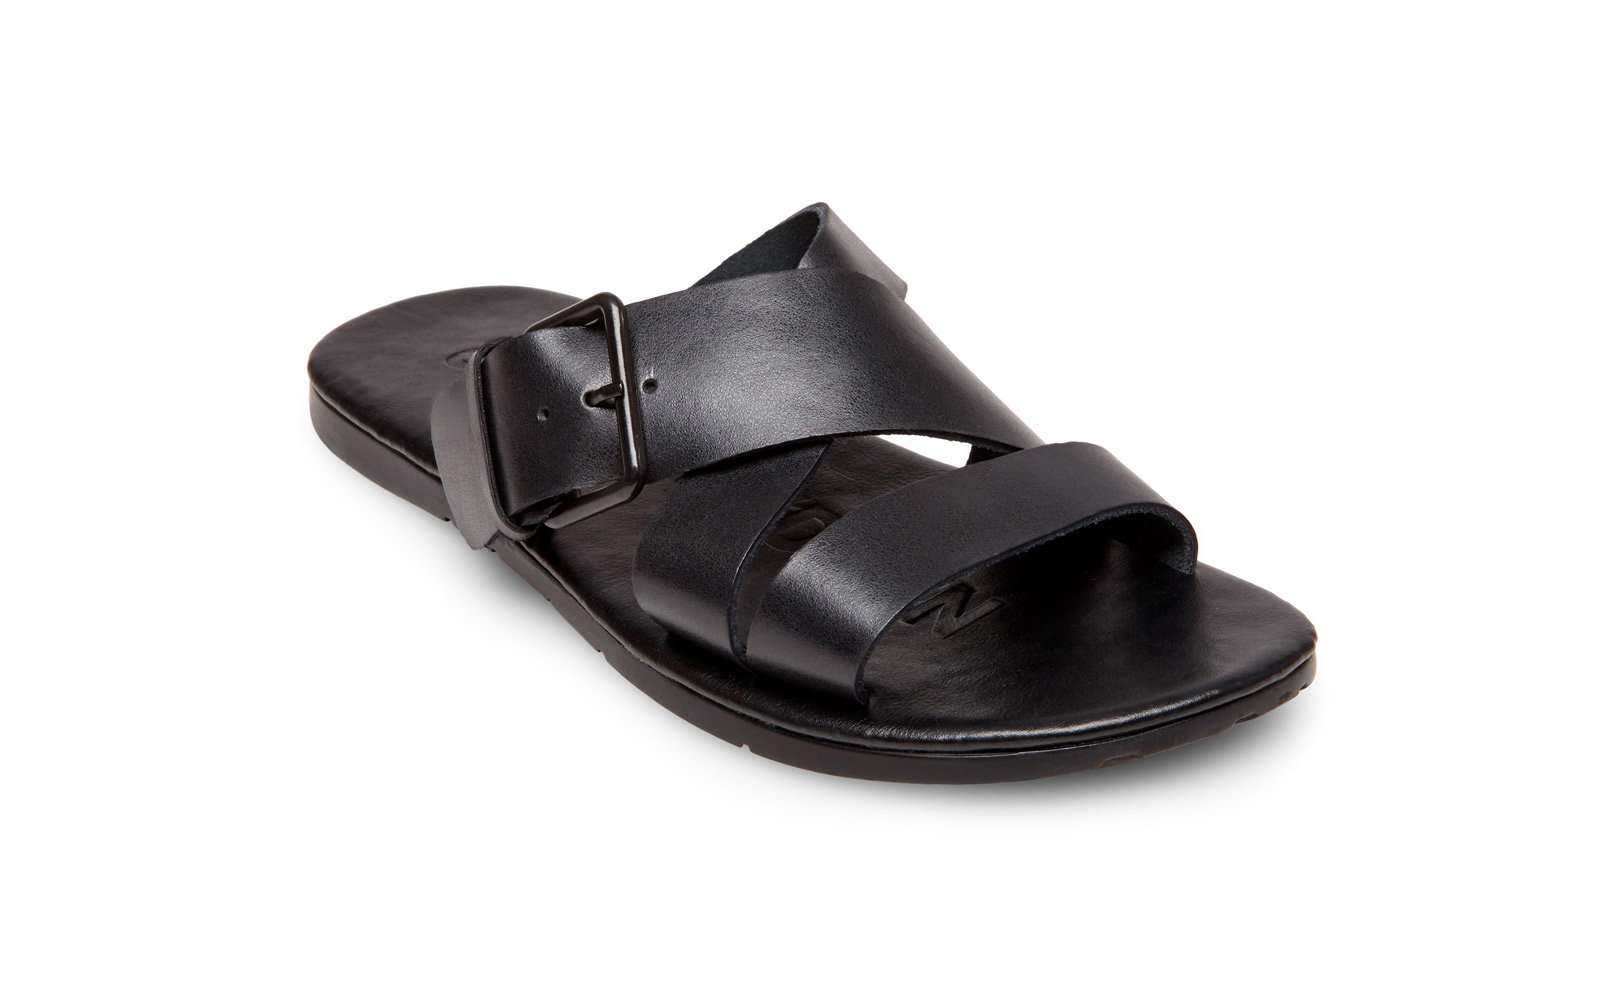 76ed584d8976 The Best Men s Sandals to Pack for Your Next Vacation